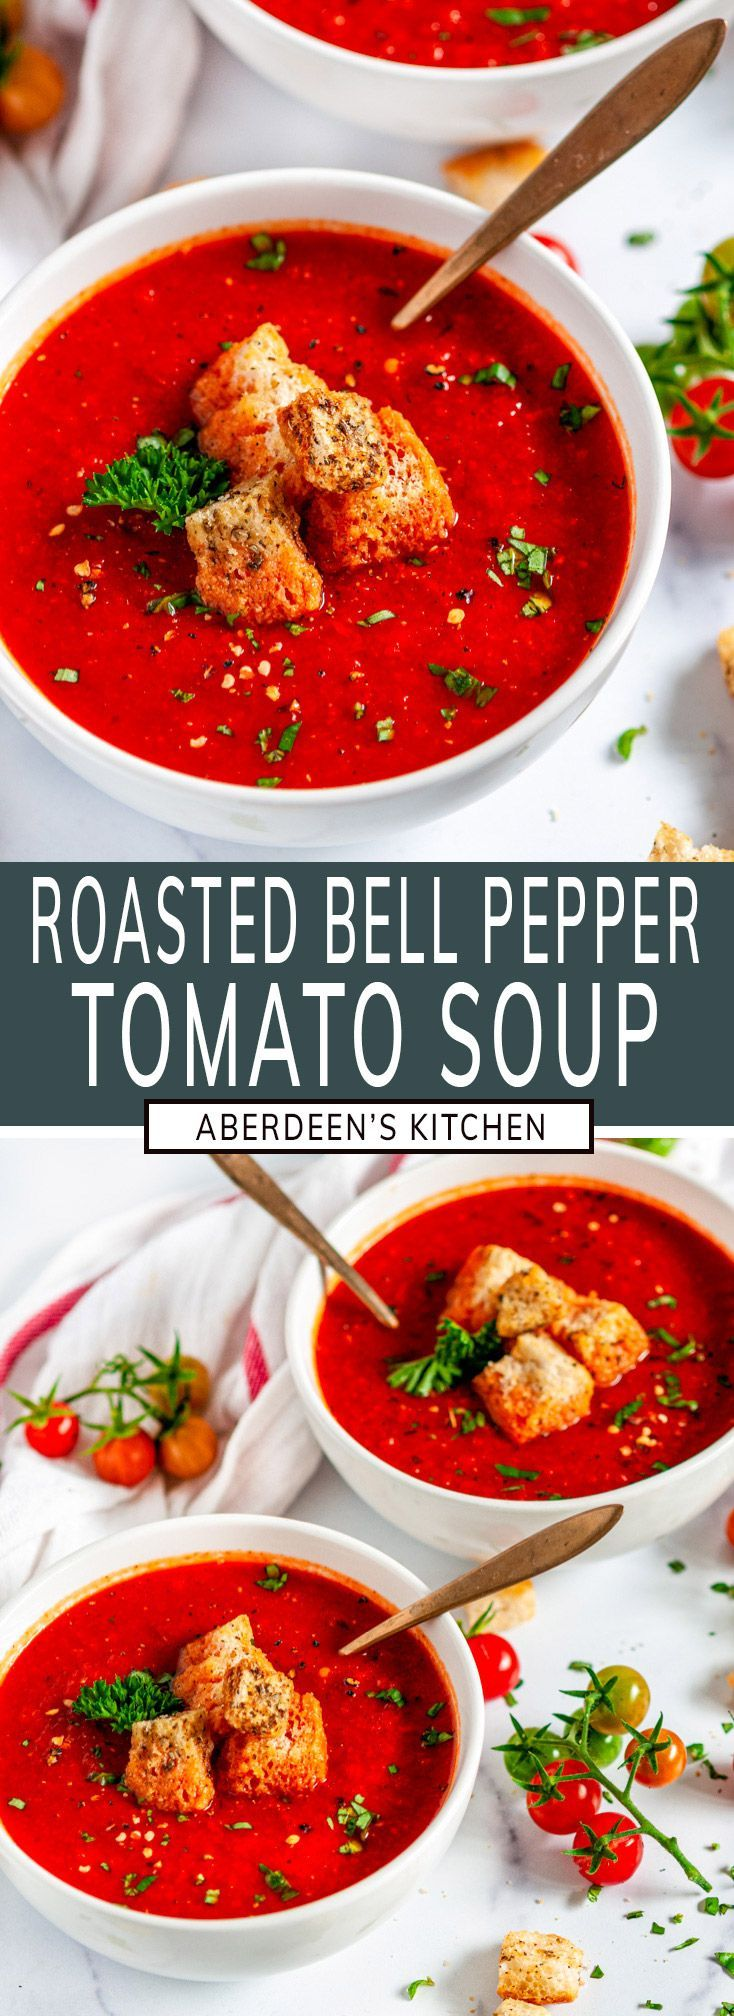 Roasted Bell Pepper Tomato Soup Aberdeen S Kitchen Recipe In 2020 Stuffed Peppers Healthy Soup Recipes Stuffed Bell Peppers